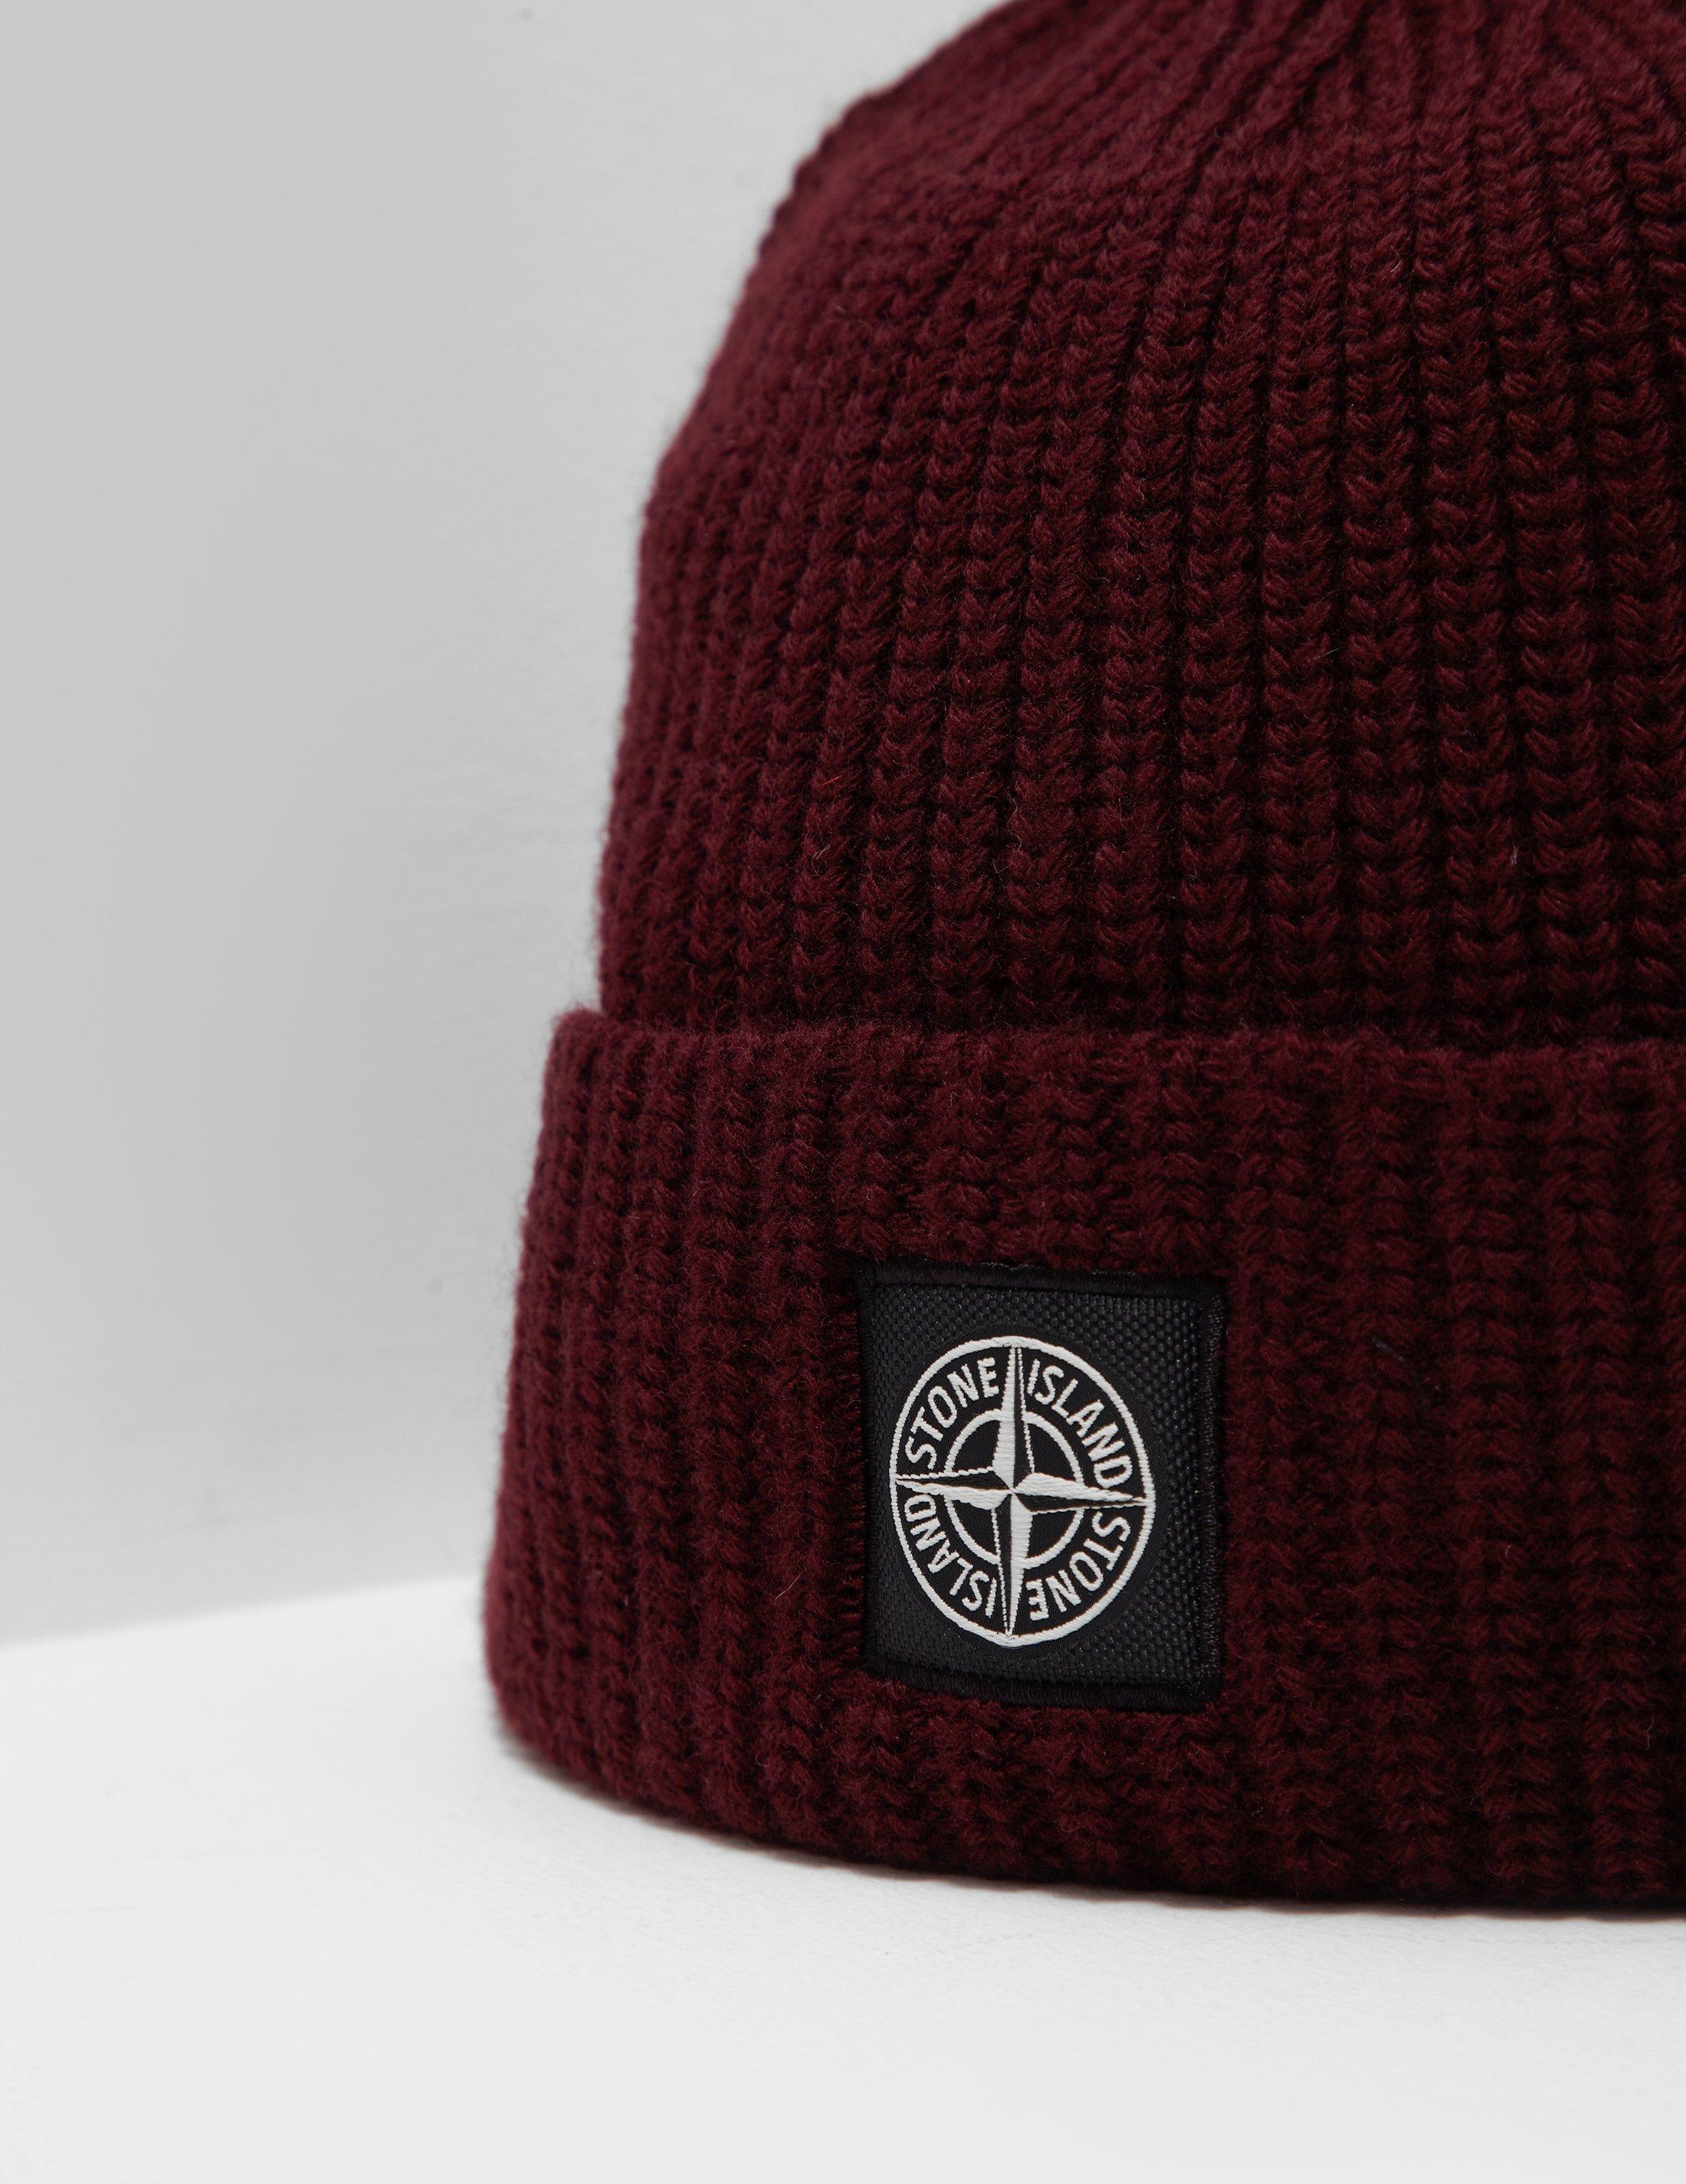 29bd96b619e ... Stone Island Mens Patch Beanie Red in Red for Men - Lyst recognized  brands 004a1 8ba3a ...